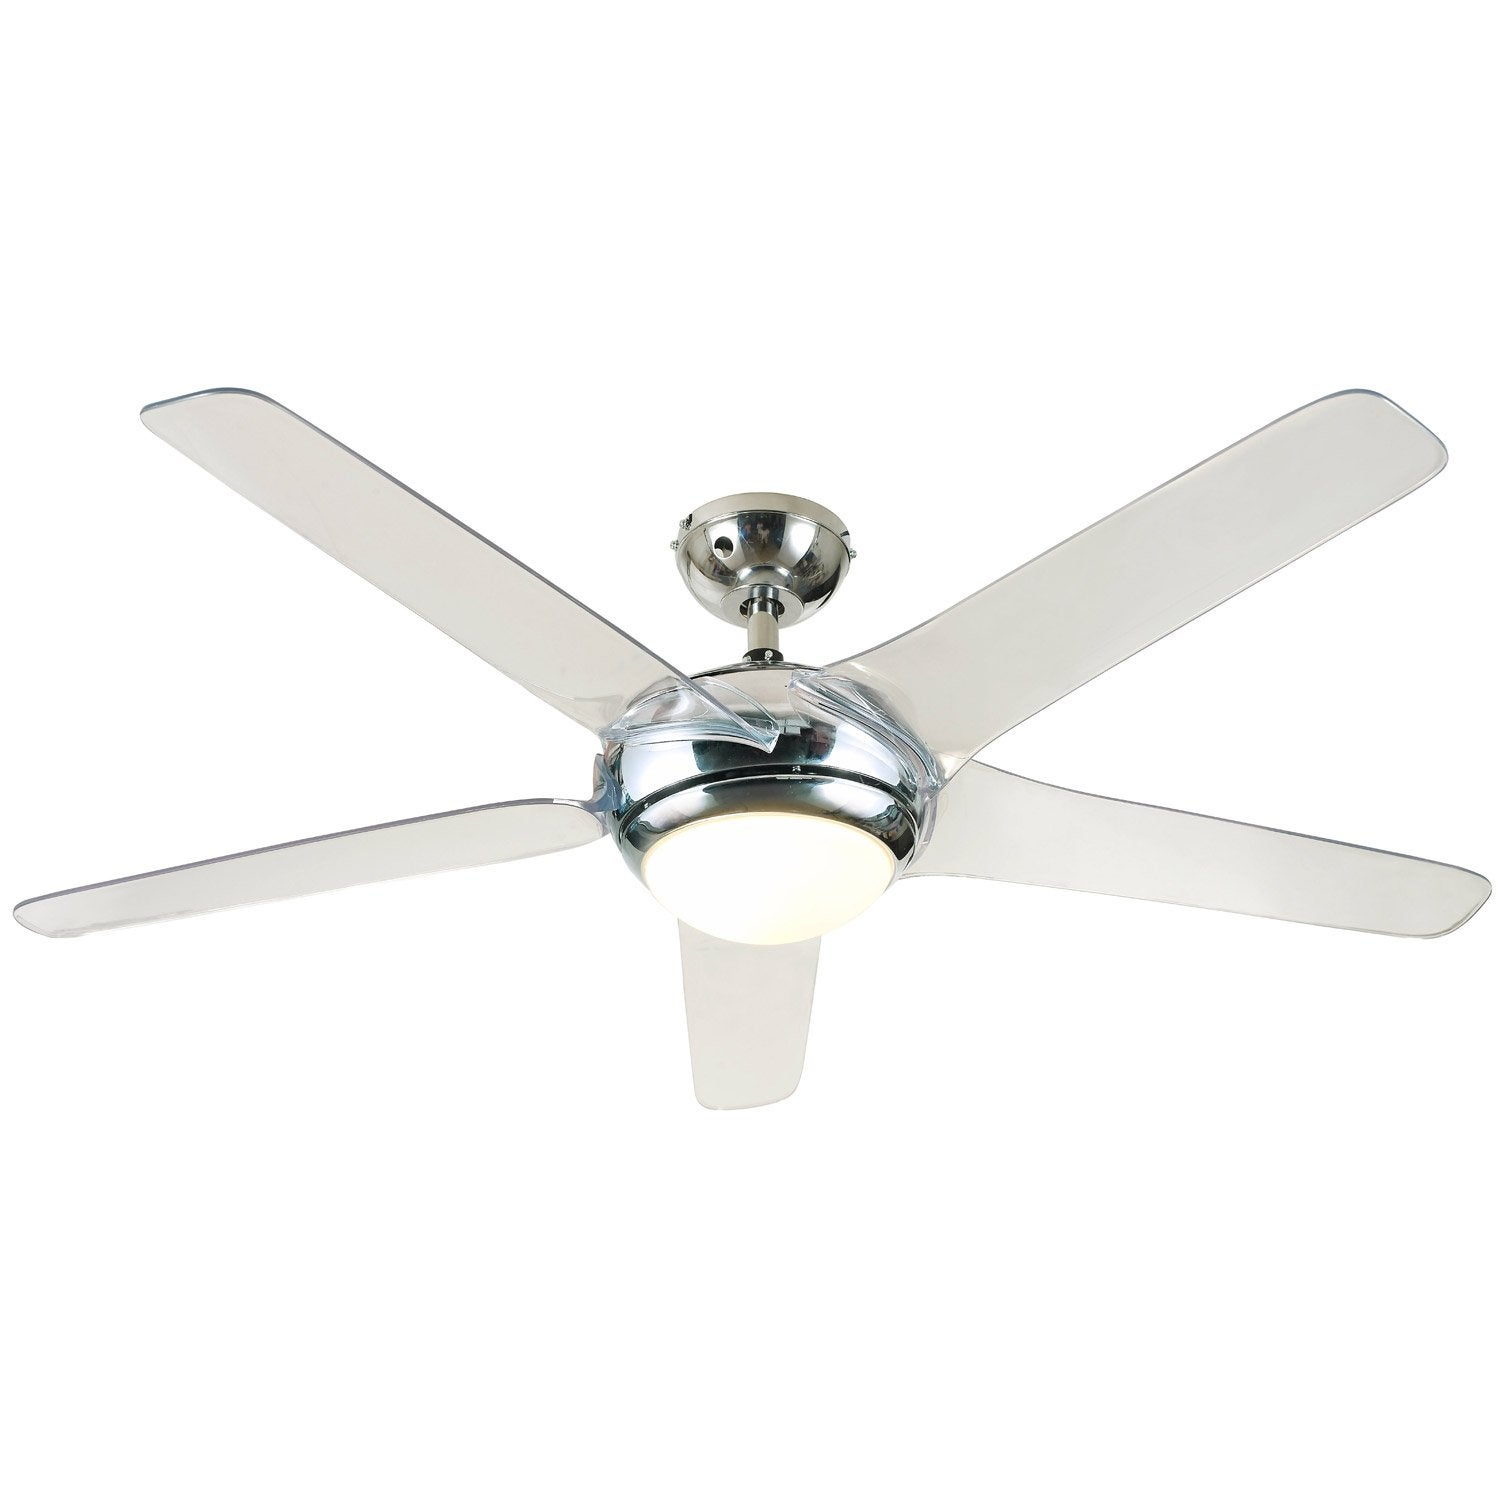 Ventilateur leroy merlin